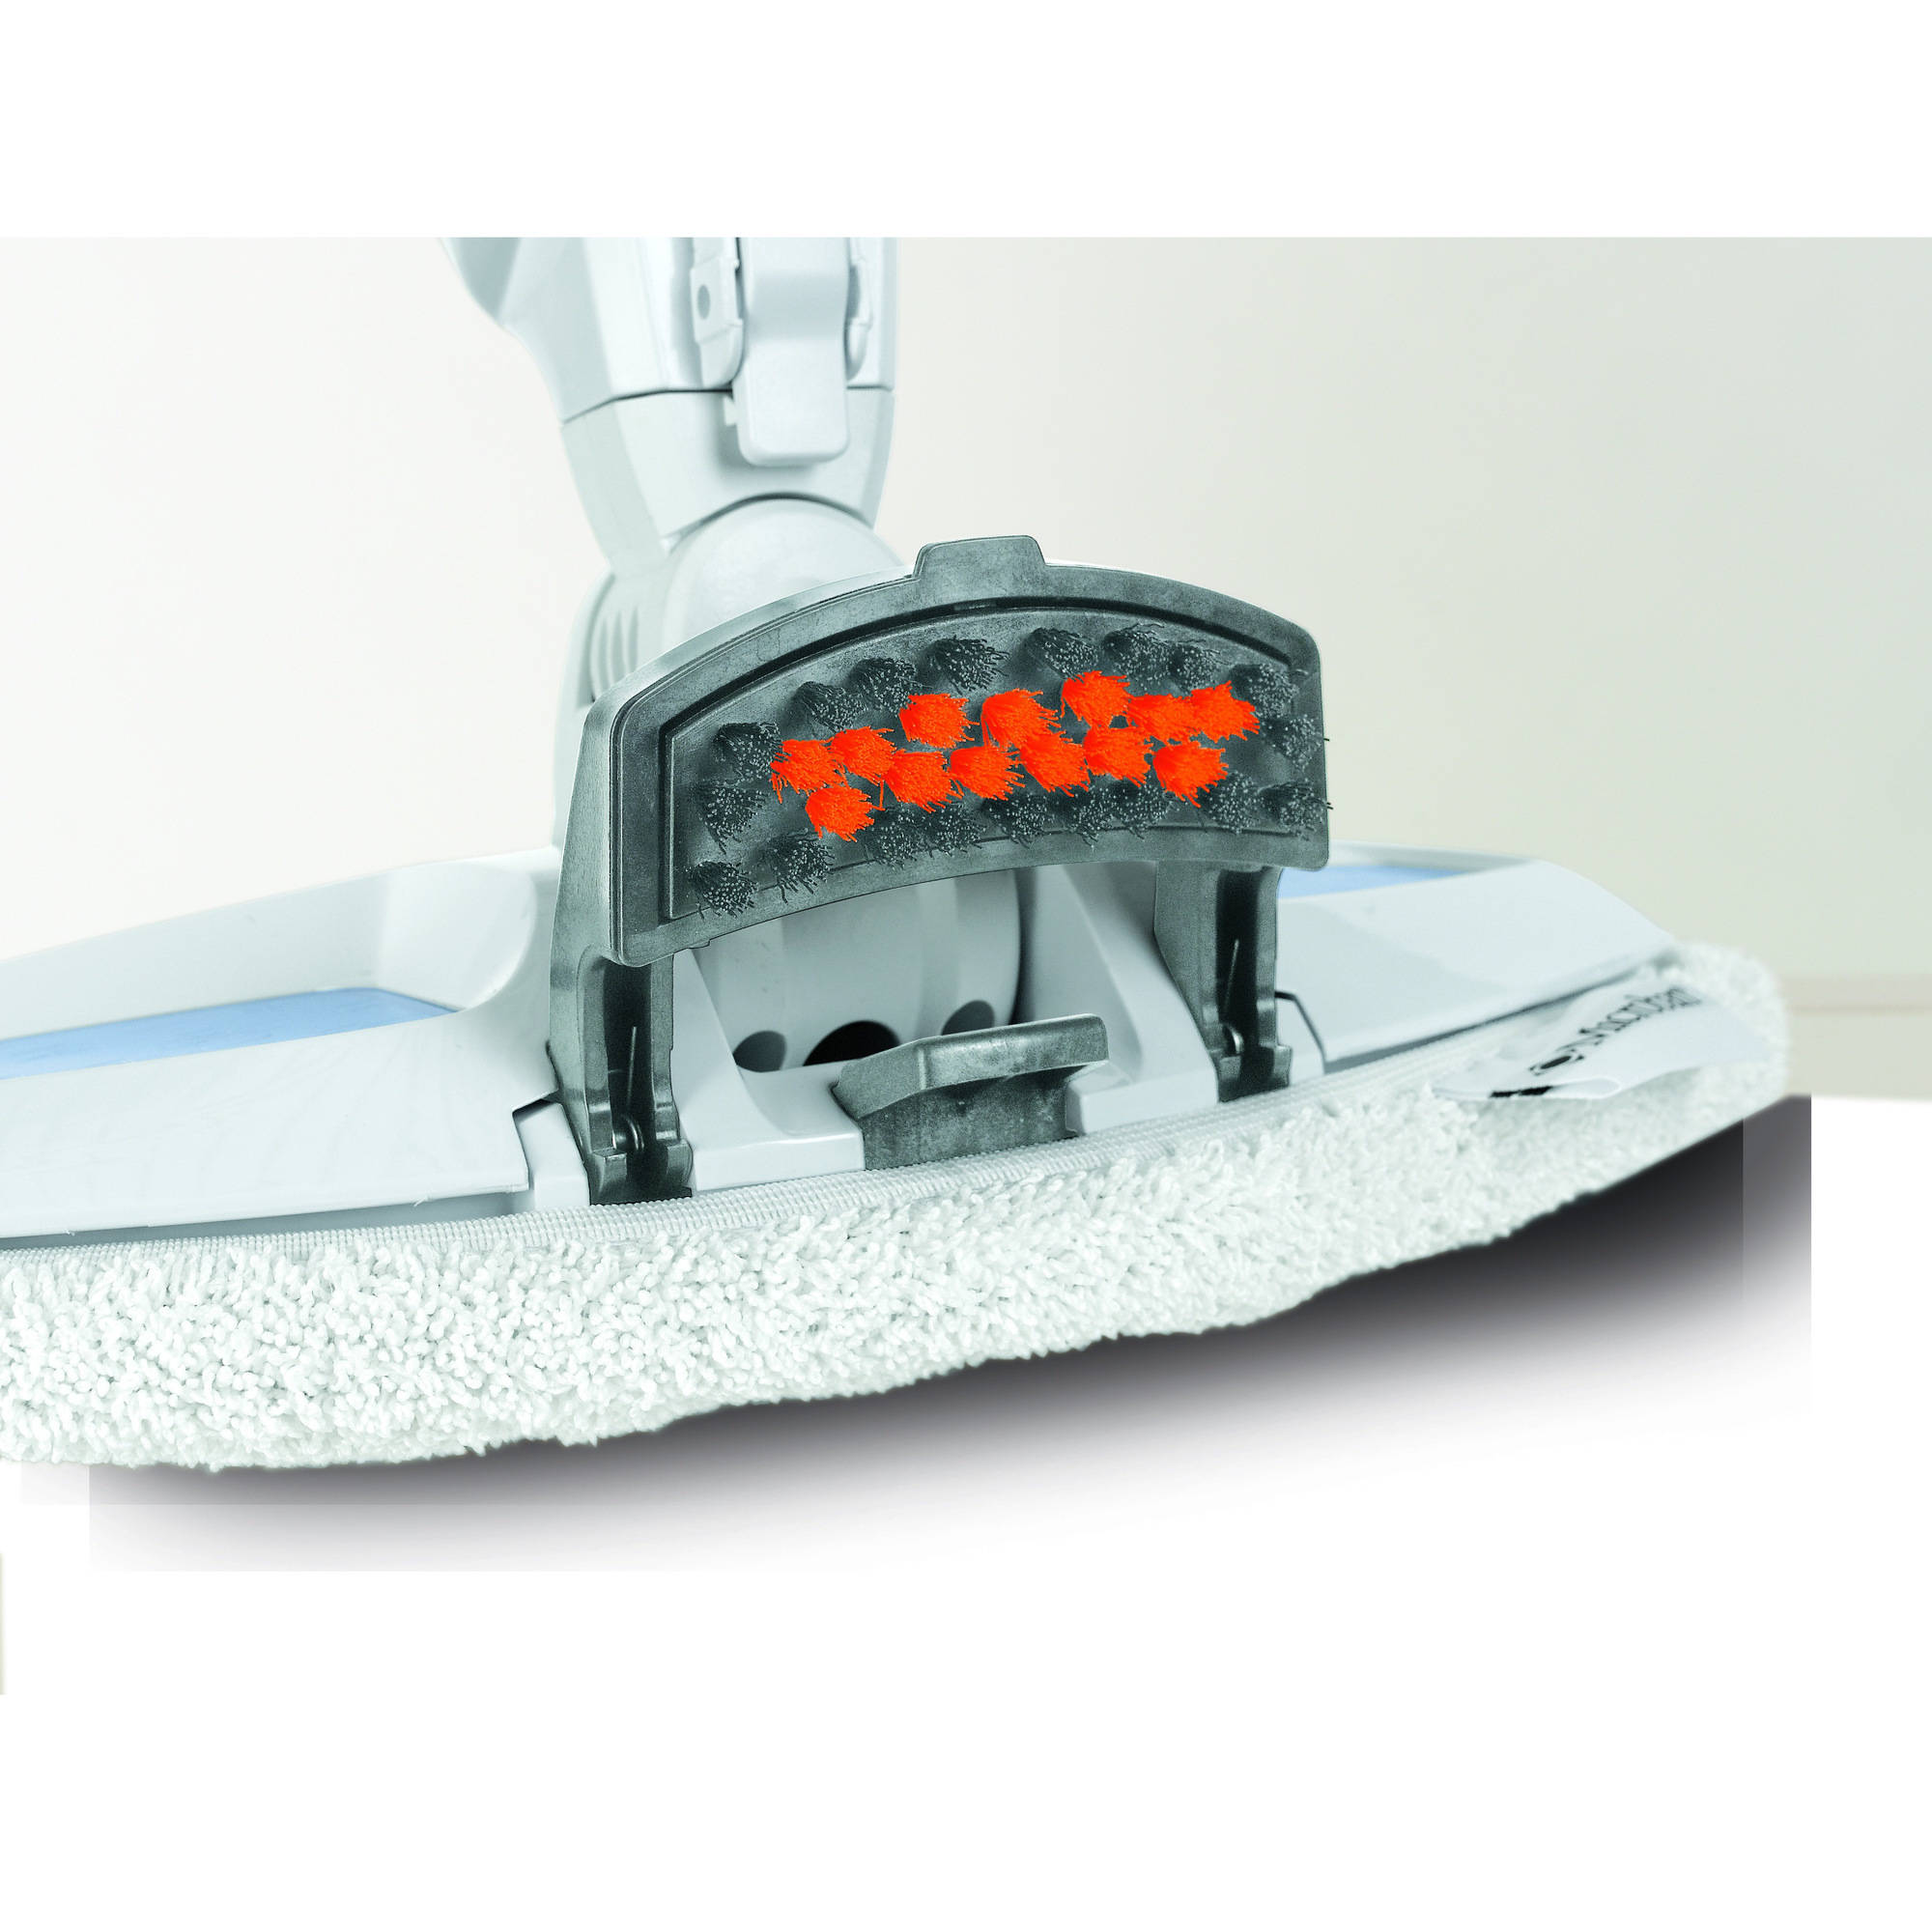 bissell powerfresh steam mop with discs and scrubber 1940w walmartcom - Bissell Steam Cleaner